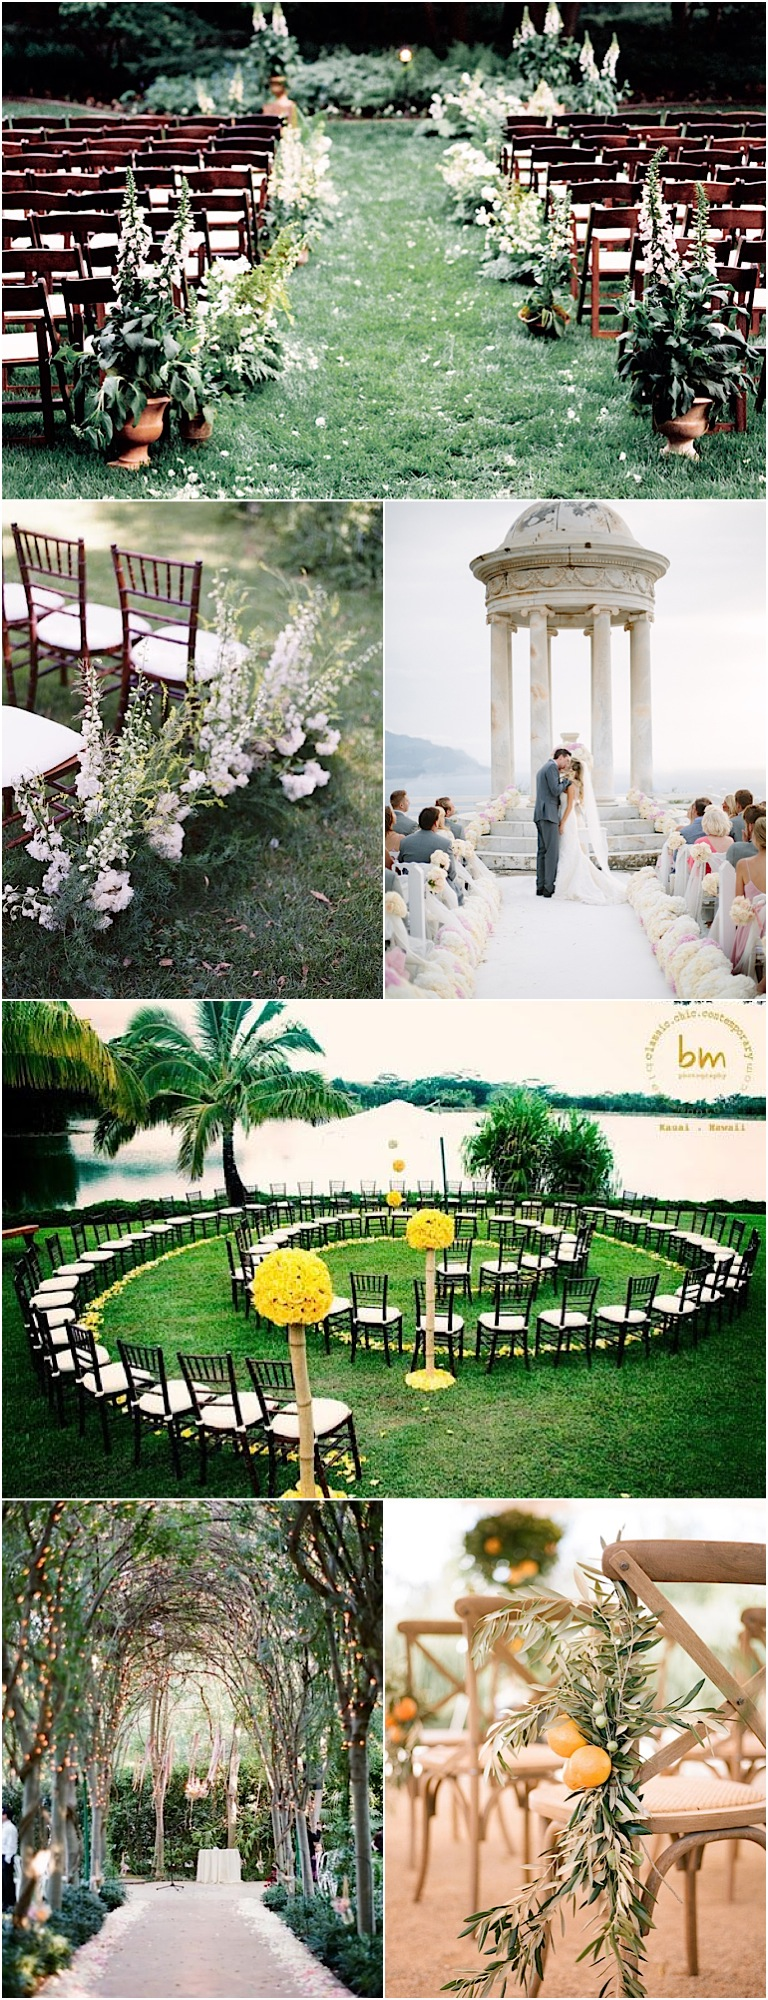 wedding-ideas-23-05062015-ky